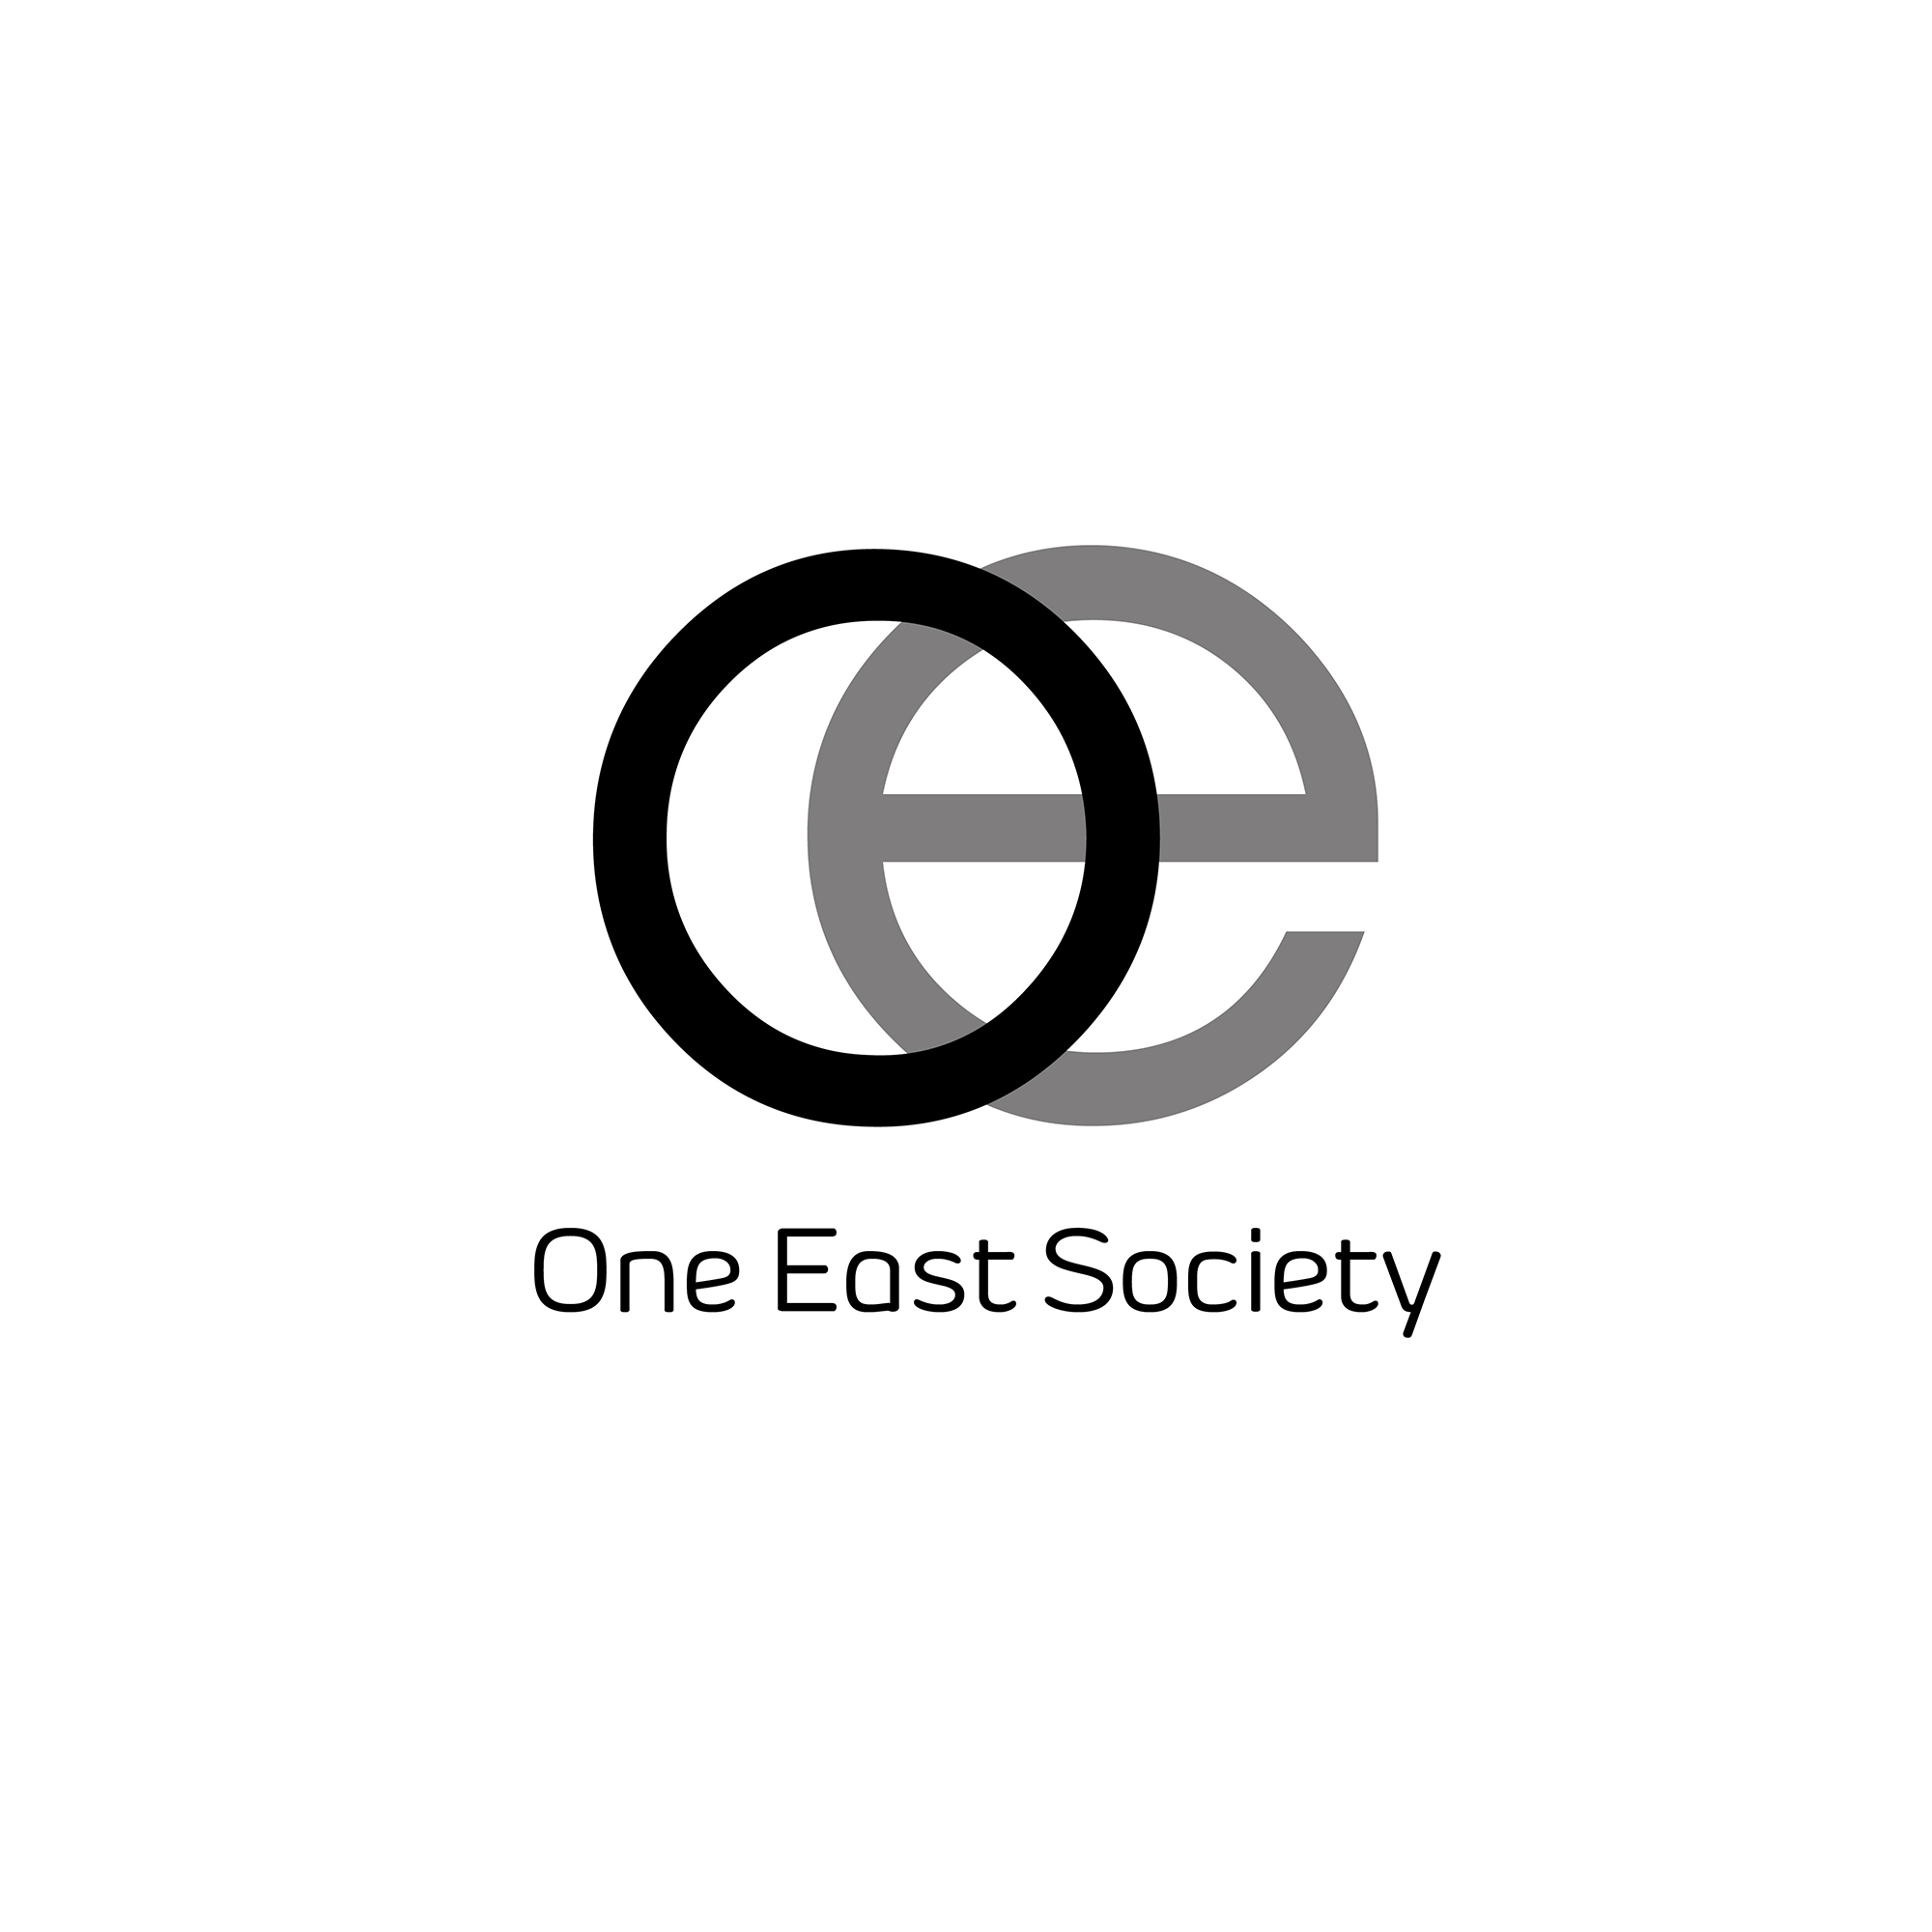 One East Society Logo